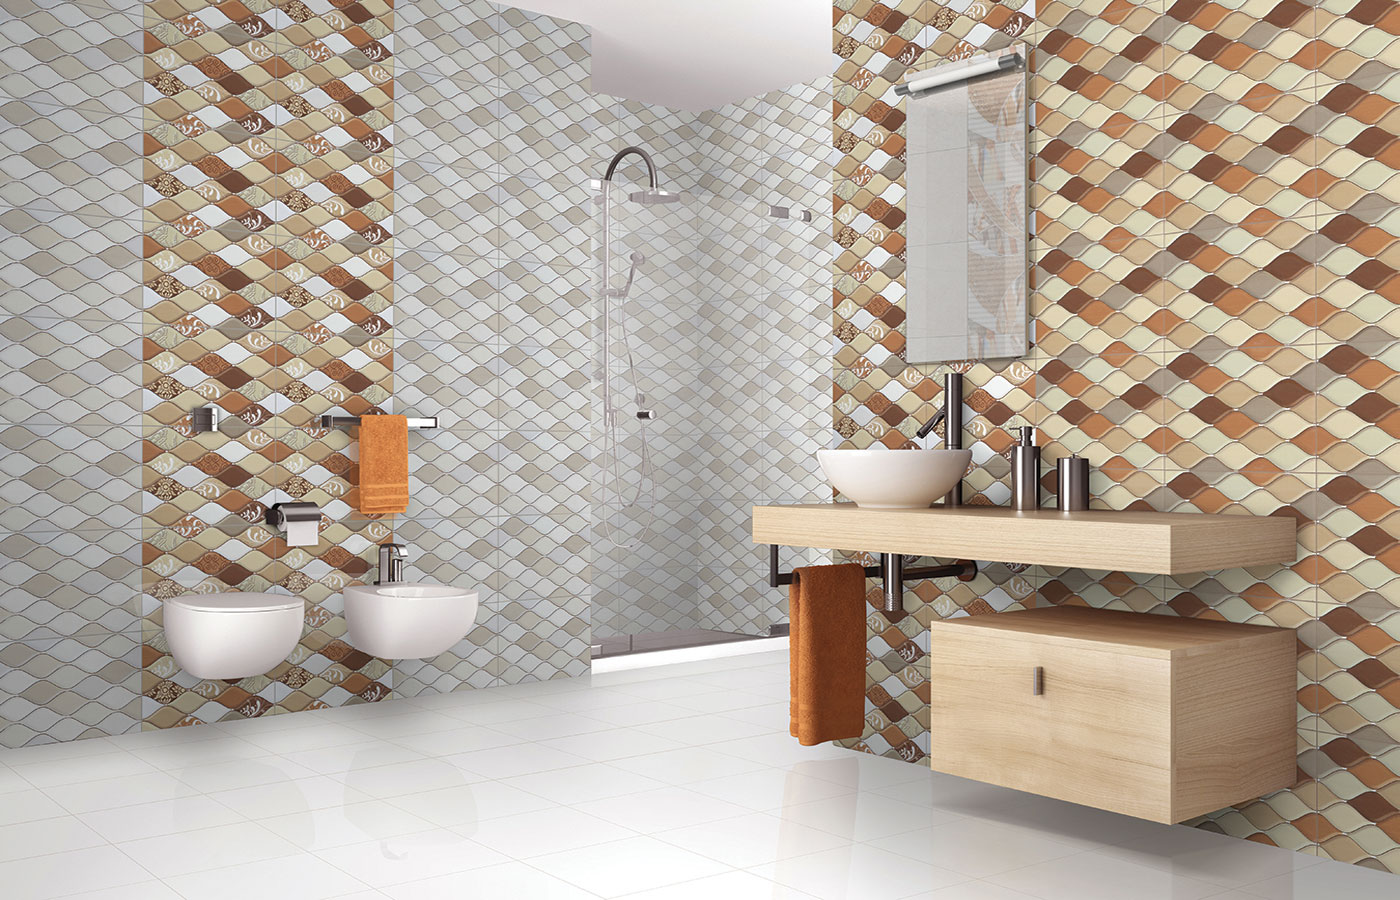 Cool 600X600 Bathroom Tile Designfloor Tile Price In Pakistandiscontinued